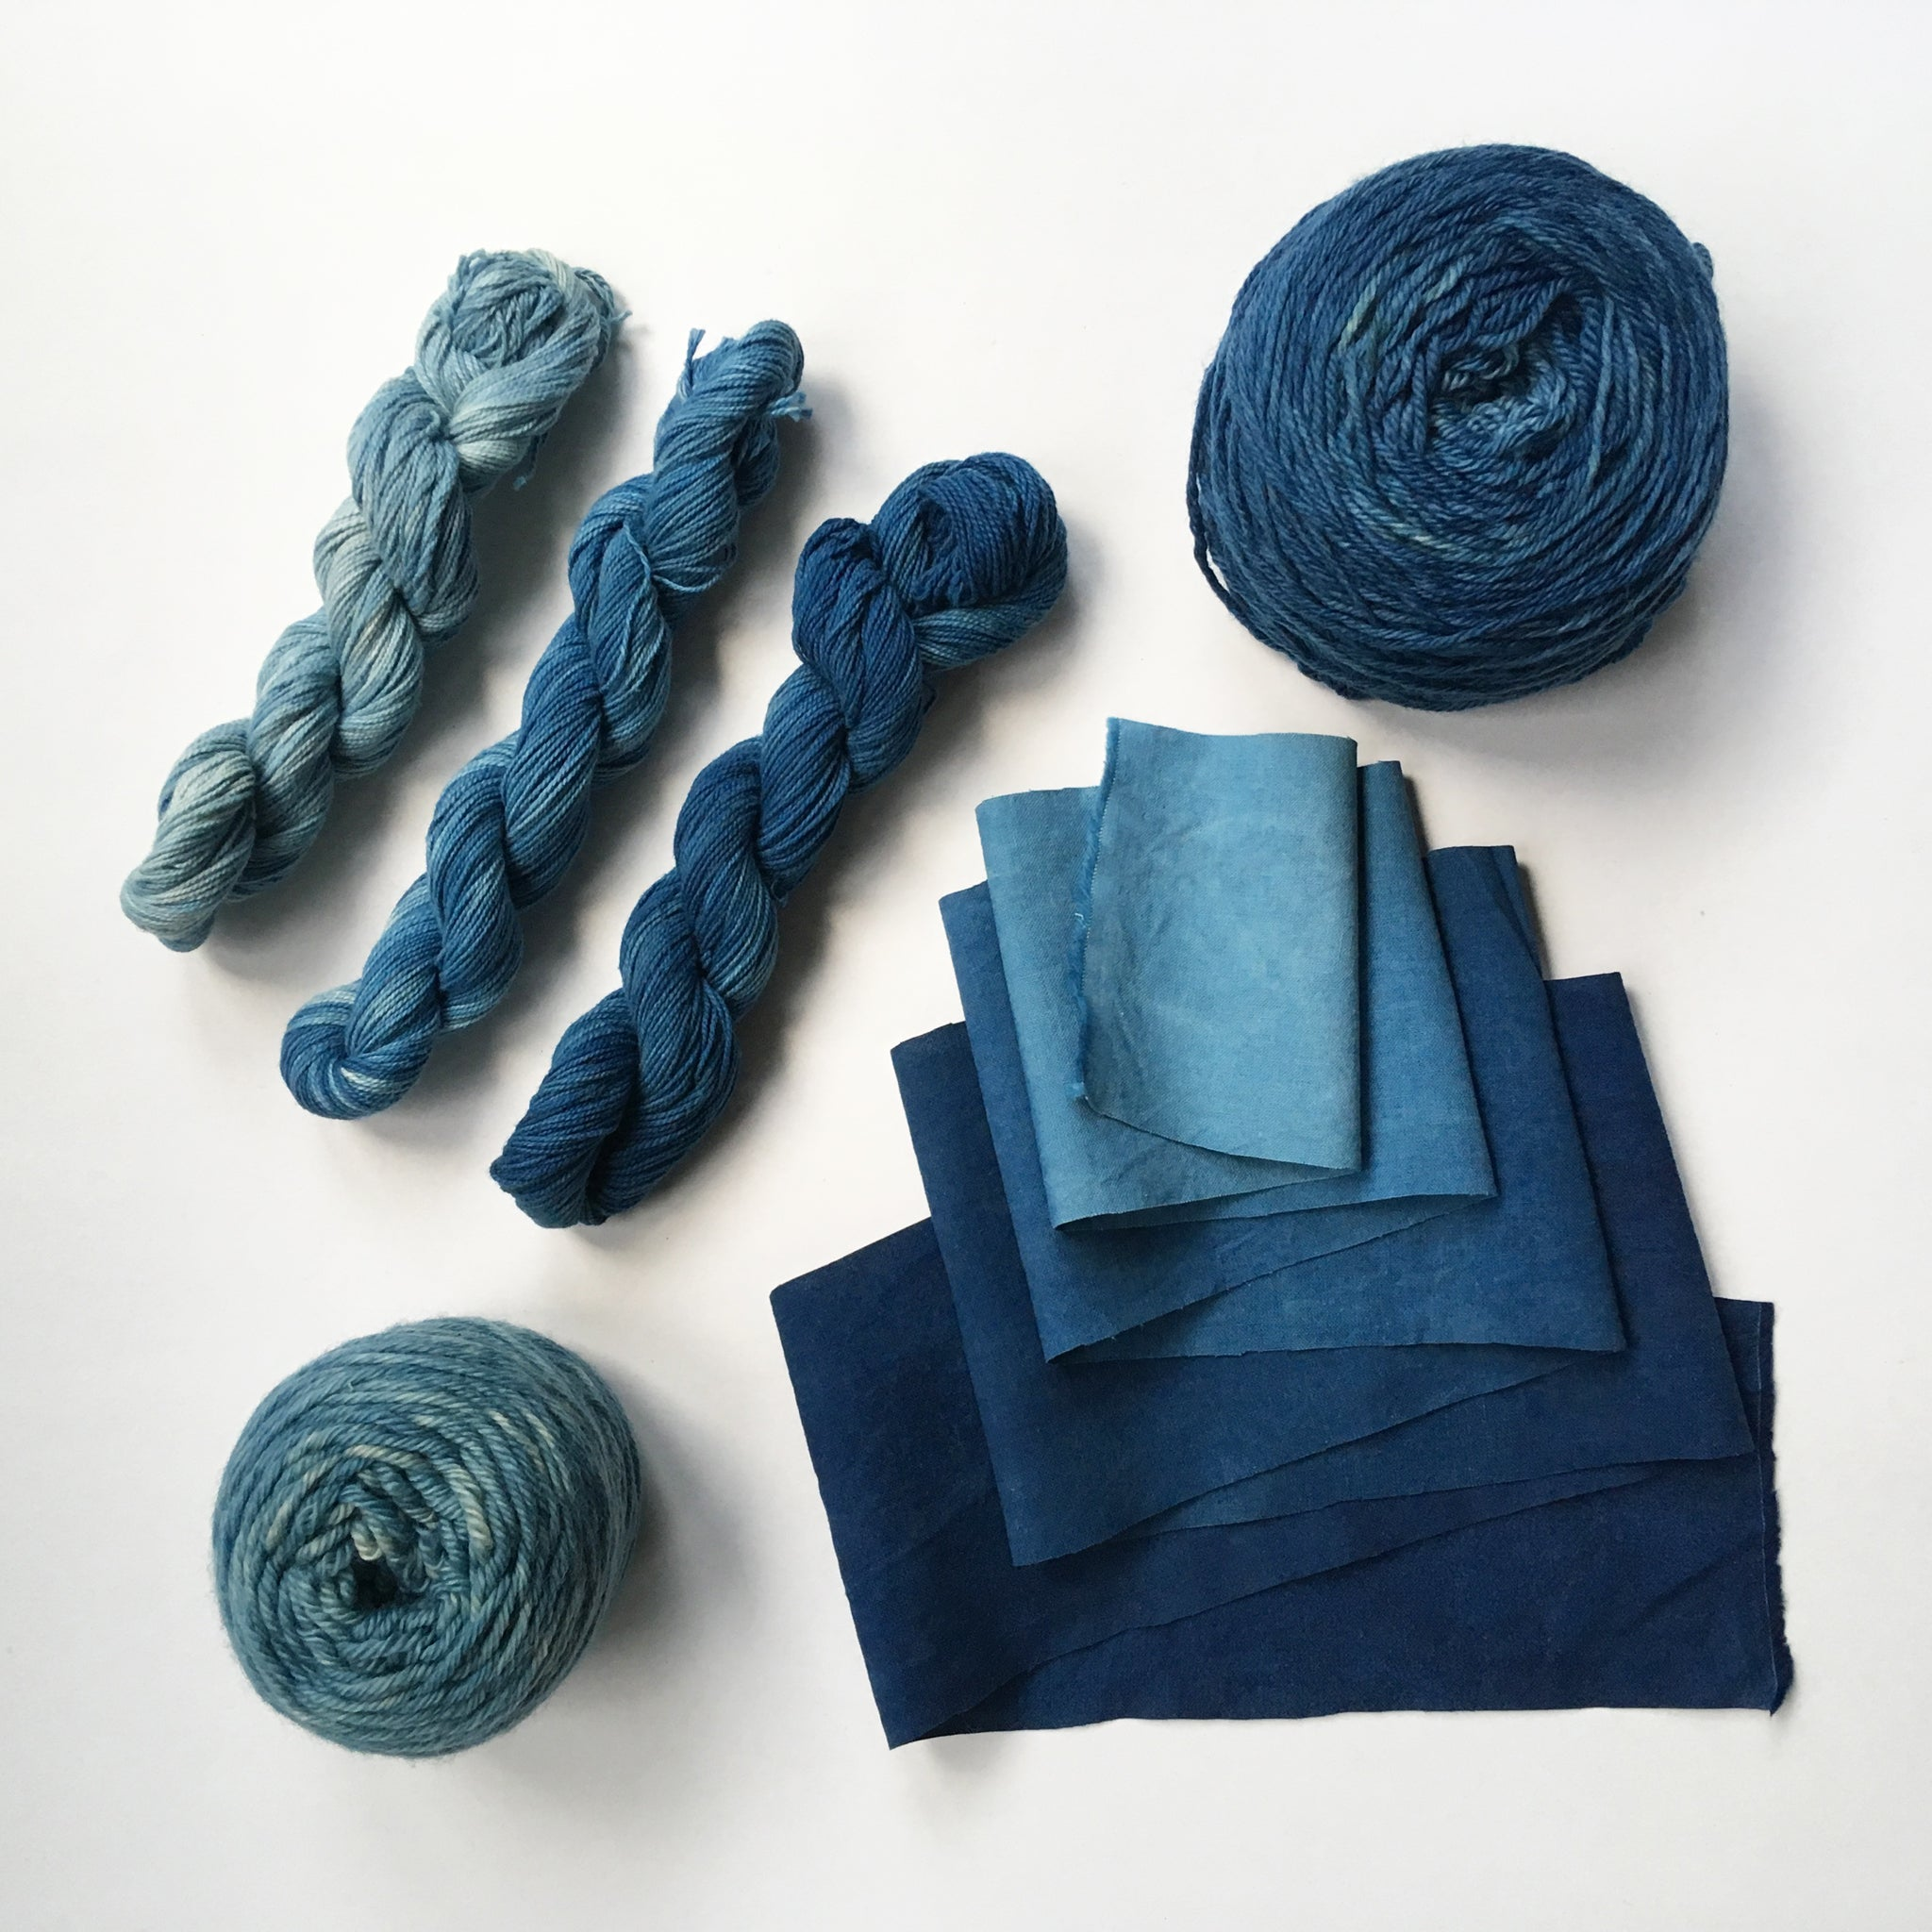 Examples of yarn and fabrics dyed with indigo kit